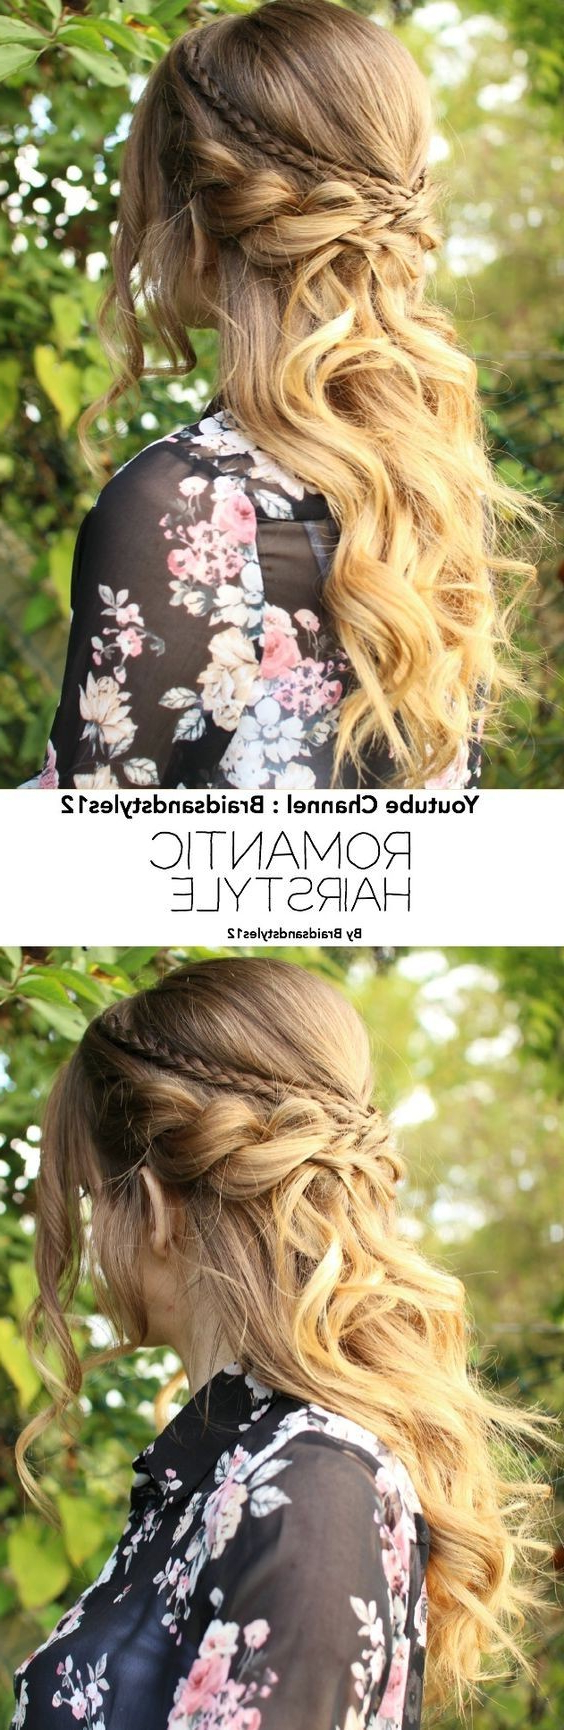 Latest Elegant Curled Prom Hairstyles In 18 Elegant Hairstyles For Prom (View 17 of 20)